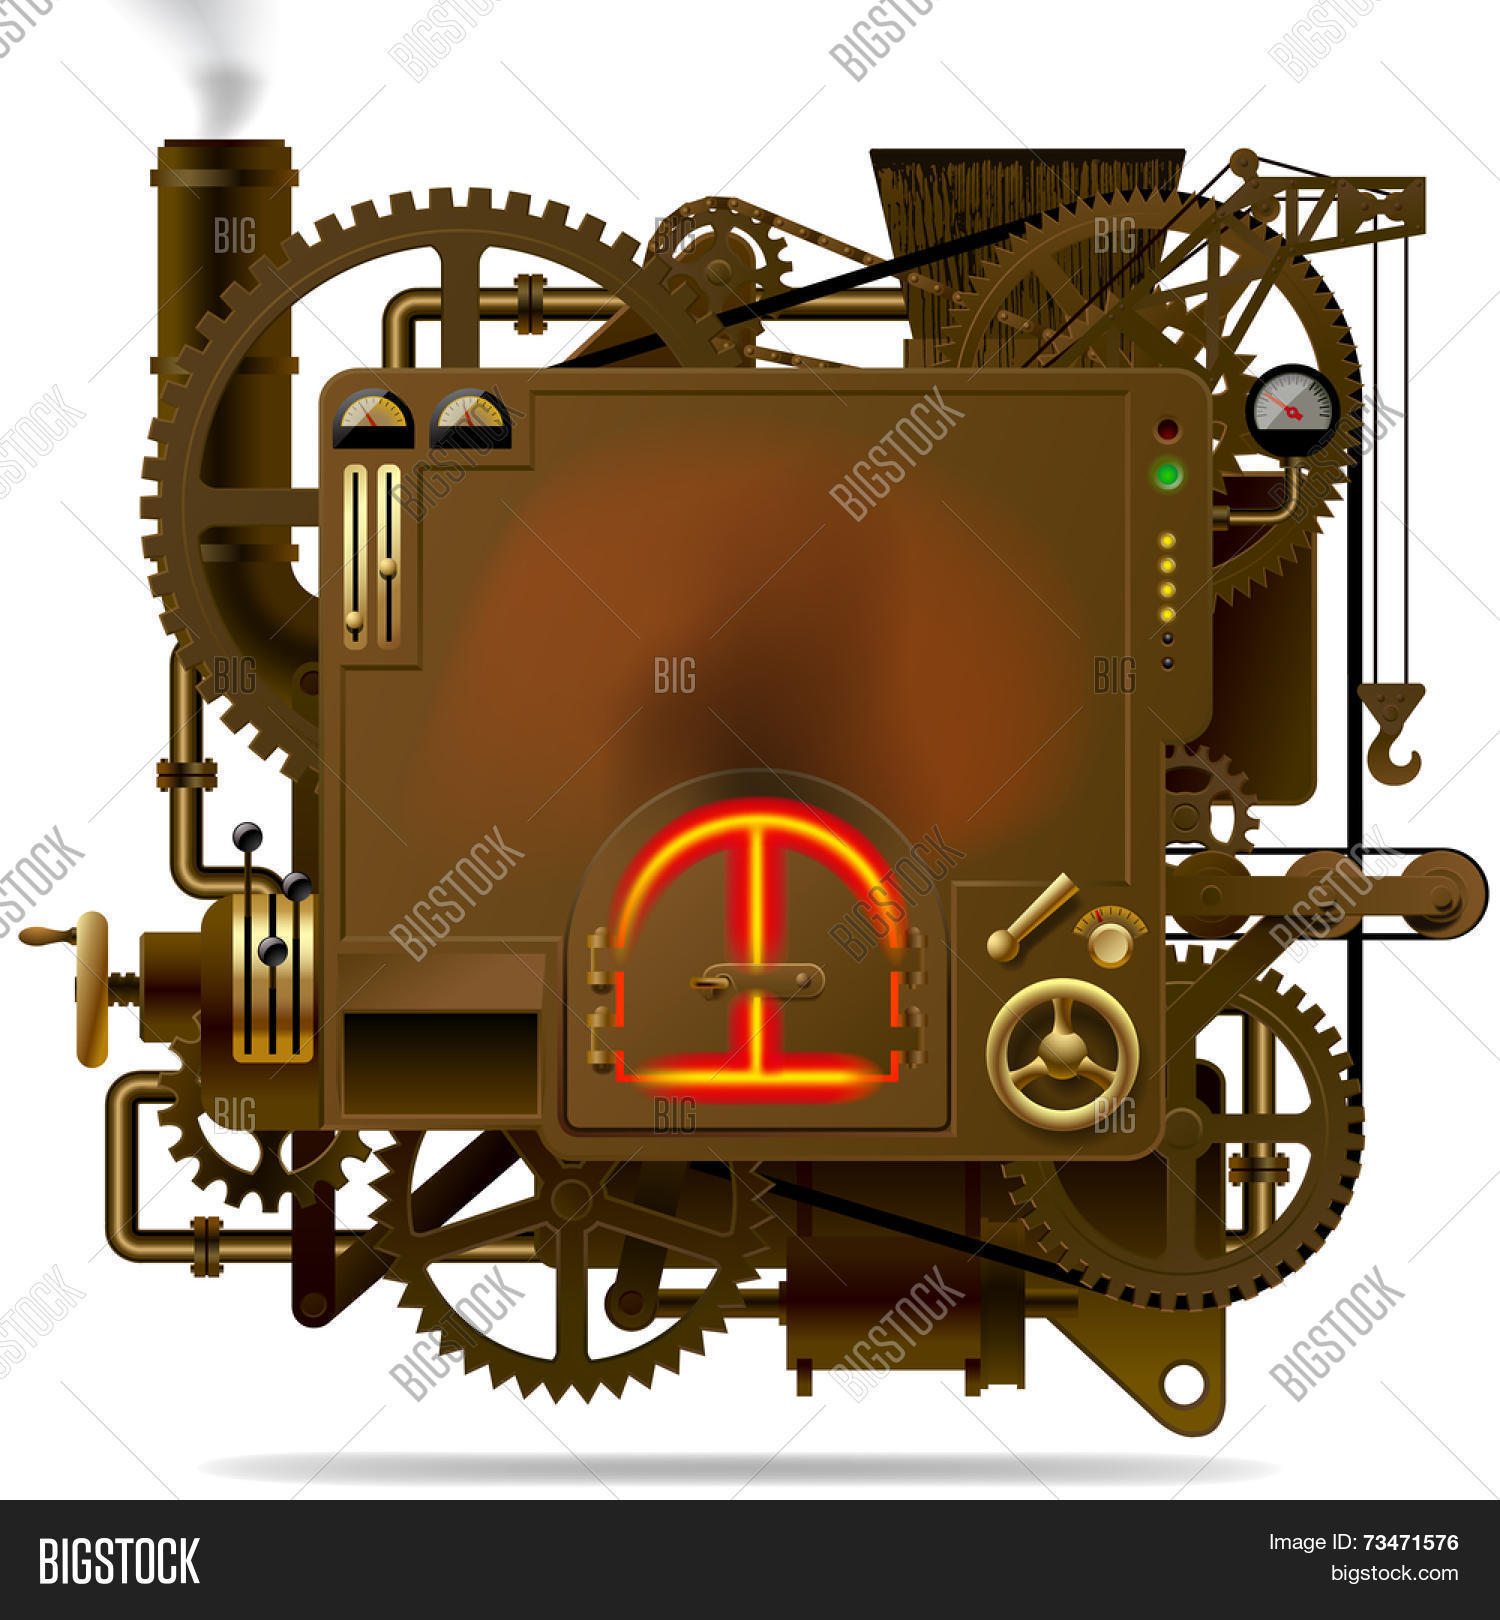 Complex fantastic machine stove image photo bigstock complex fantastic machine with stove gears levers pipes and other machinery symbol biocorpaavc Gallery